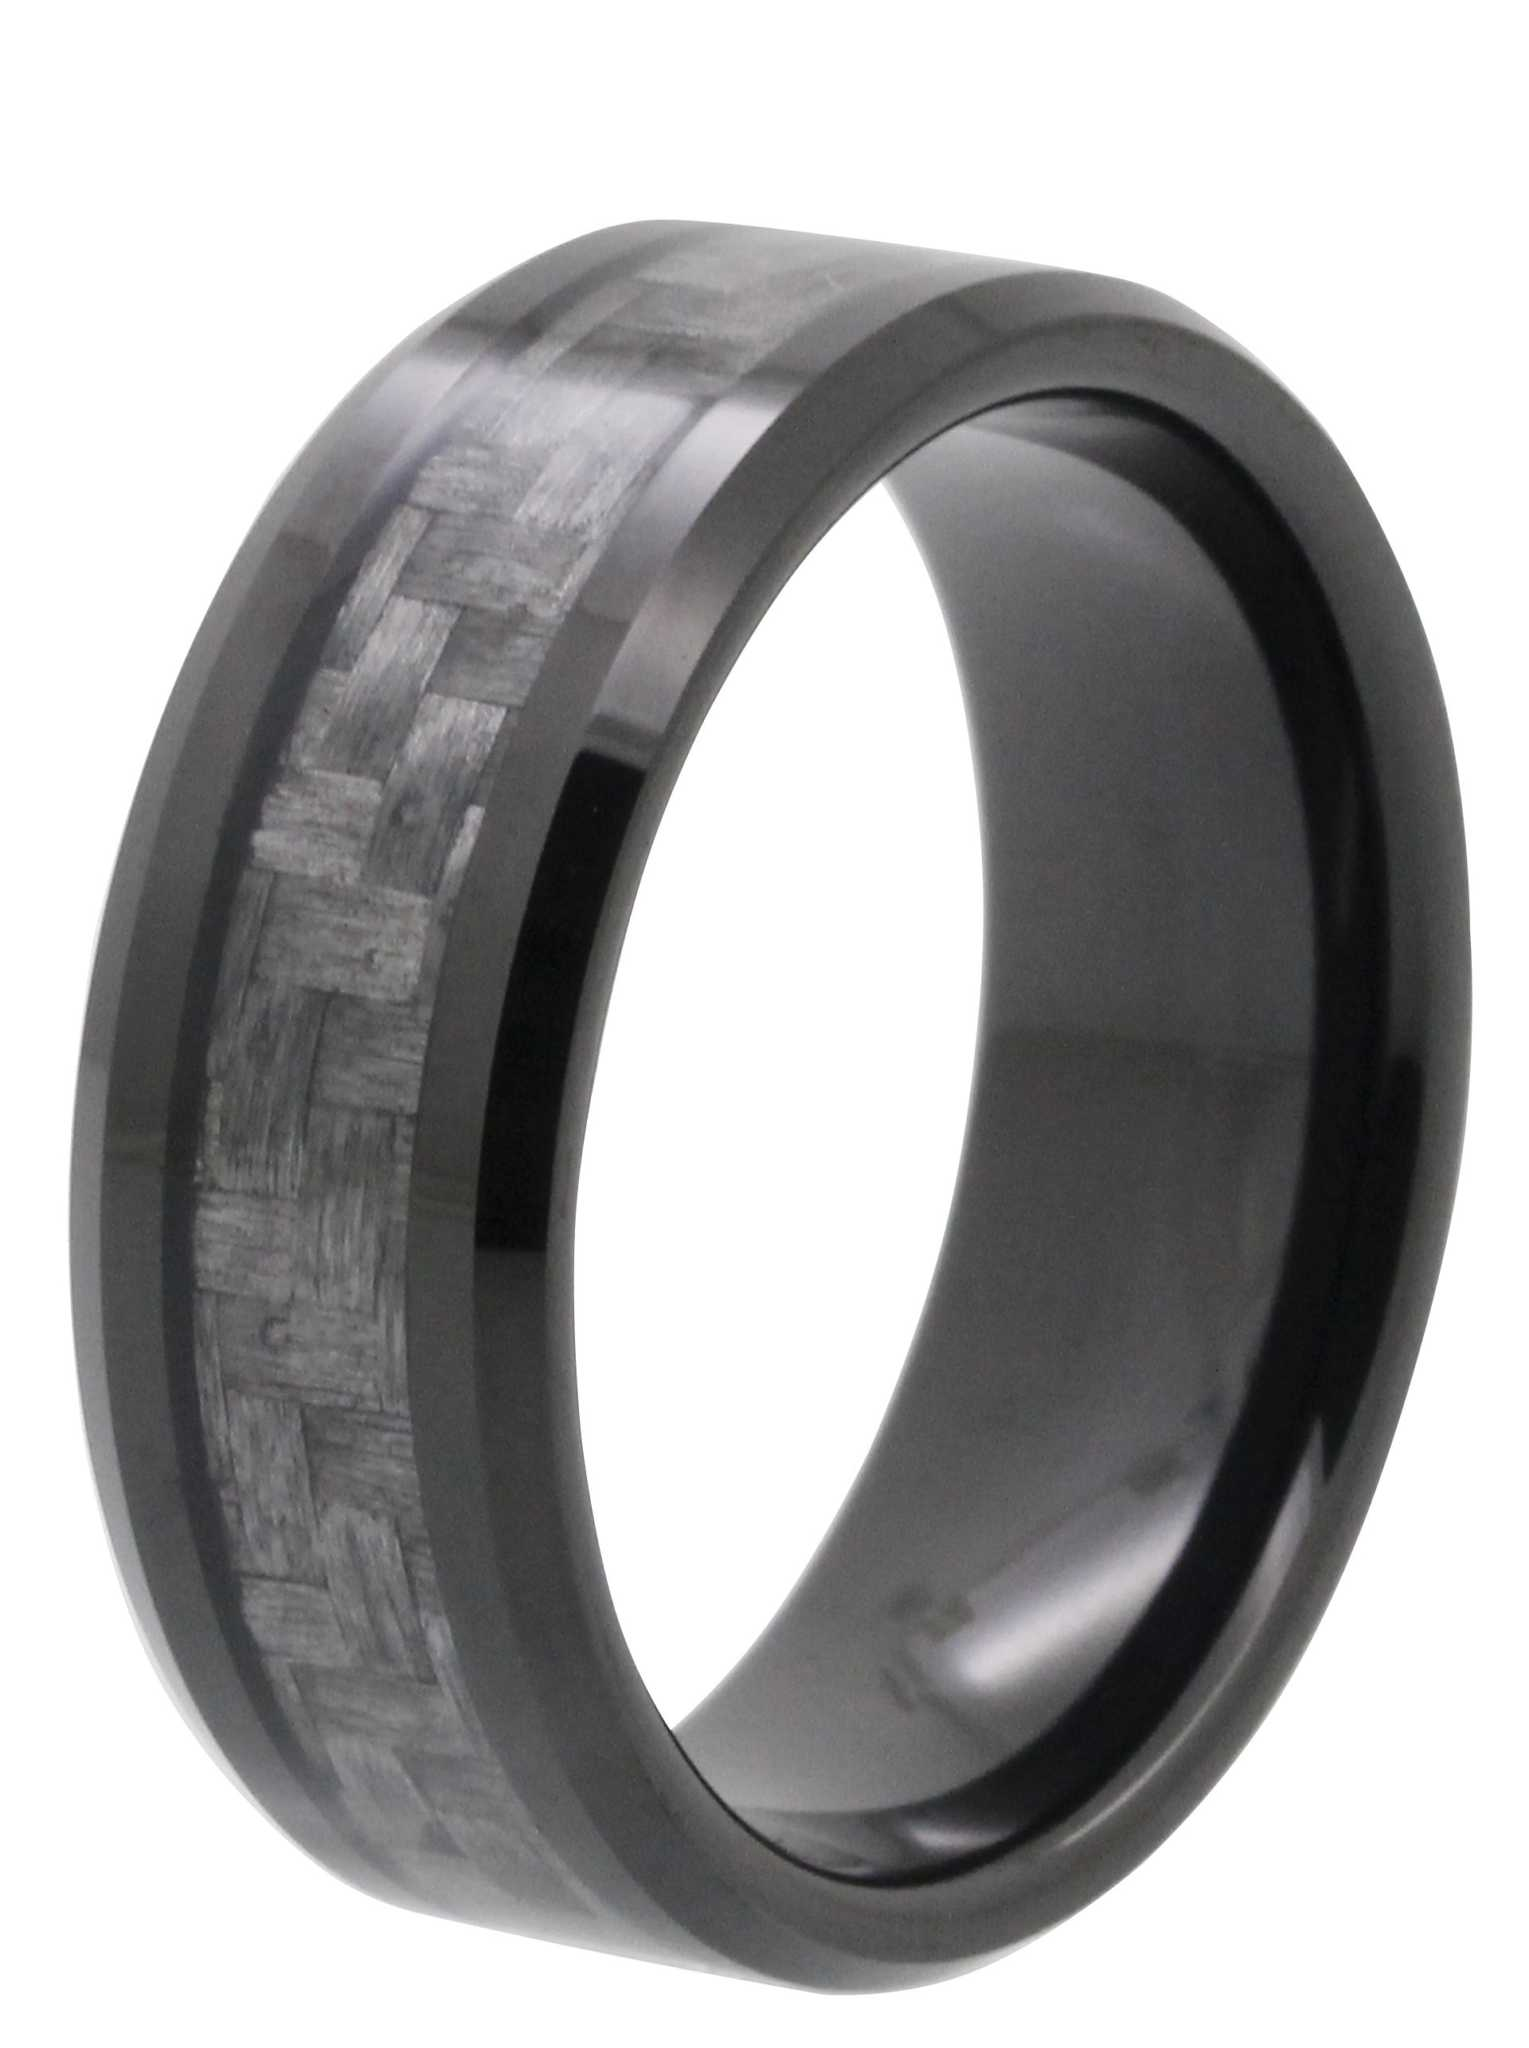 8mm carbon fiber inlay tayloright tungsten wedding band for Carbon fibre wedding ring